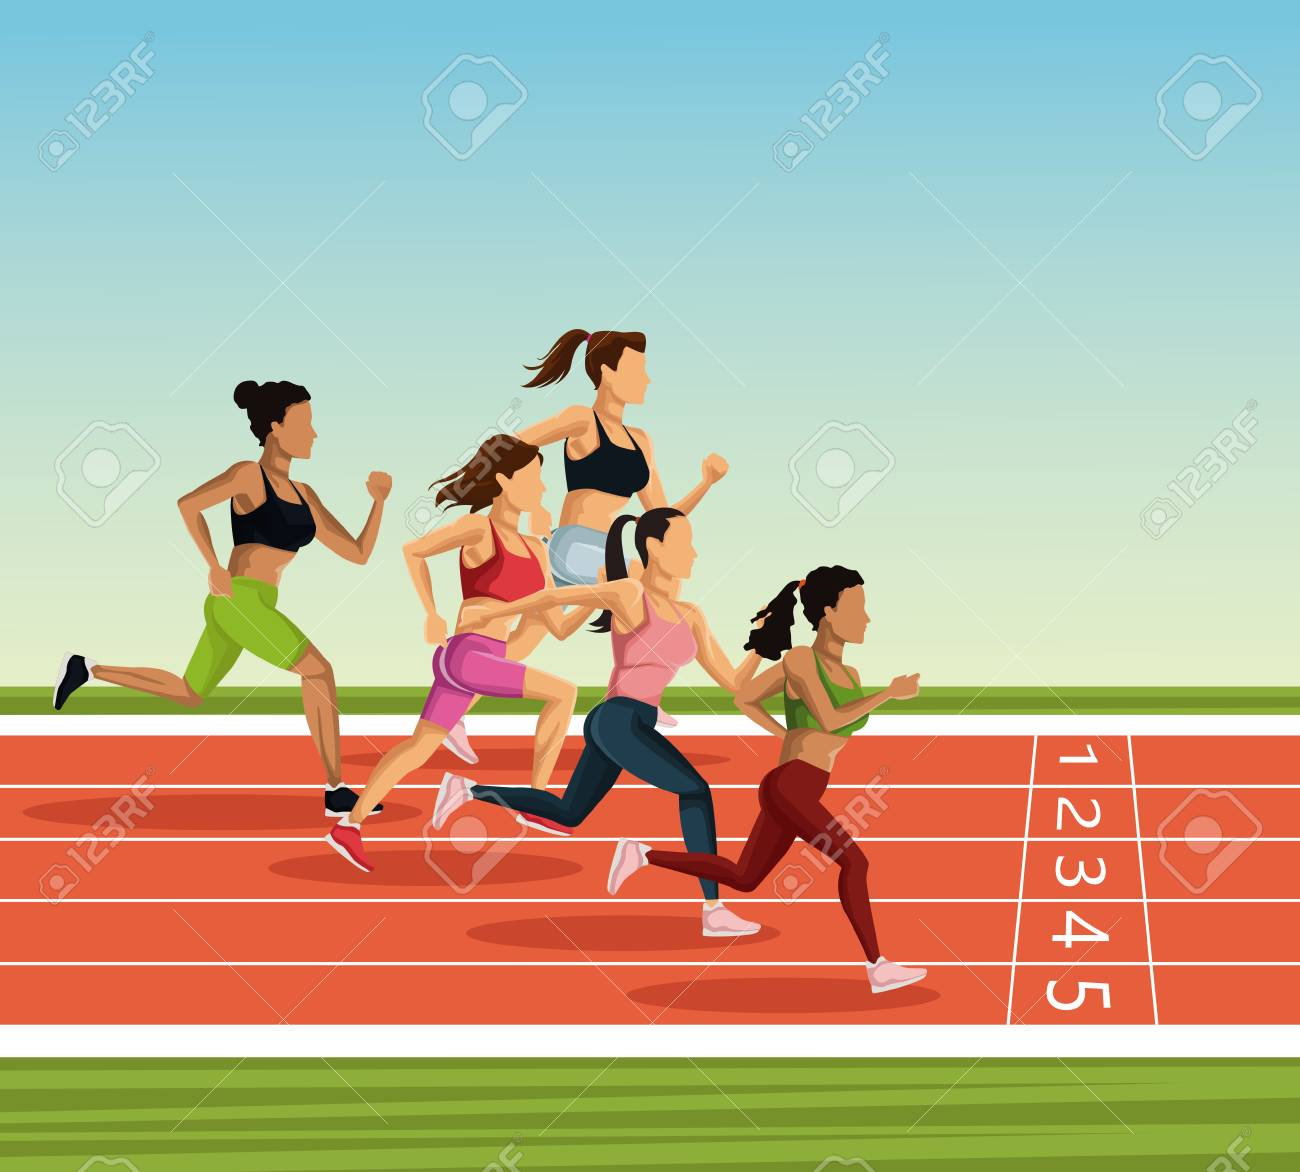 People Running Track Clipart & Free Clip Art Images #25445.